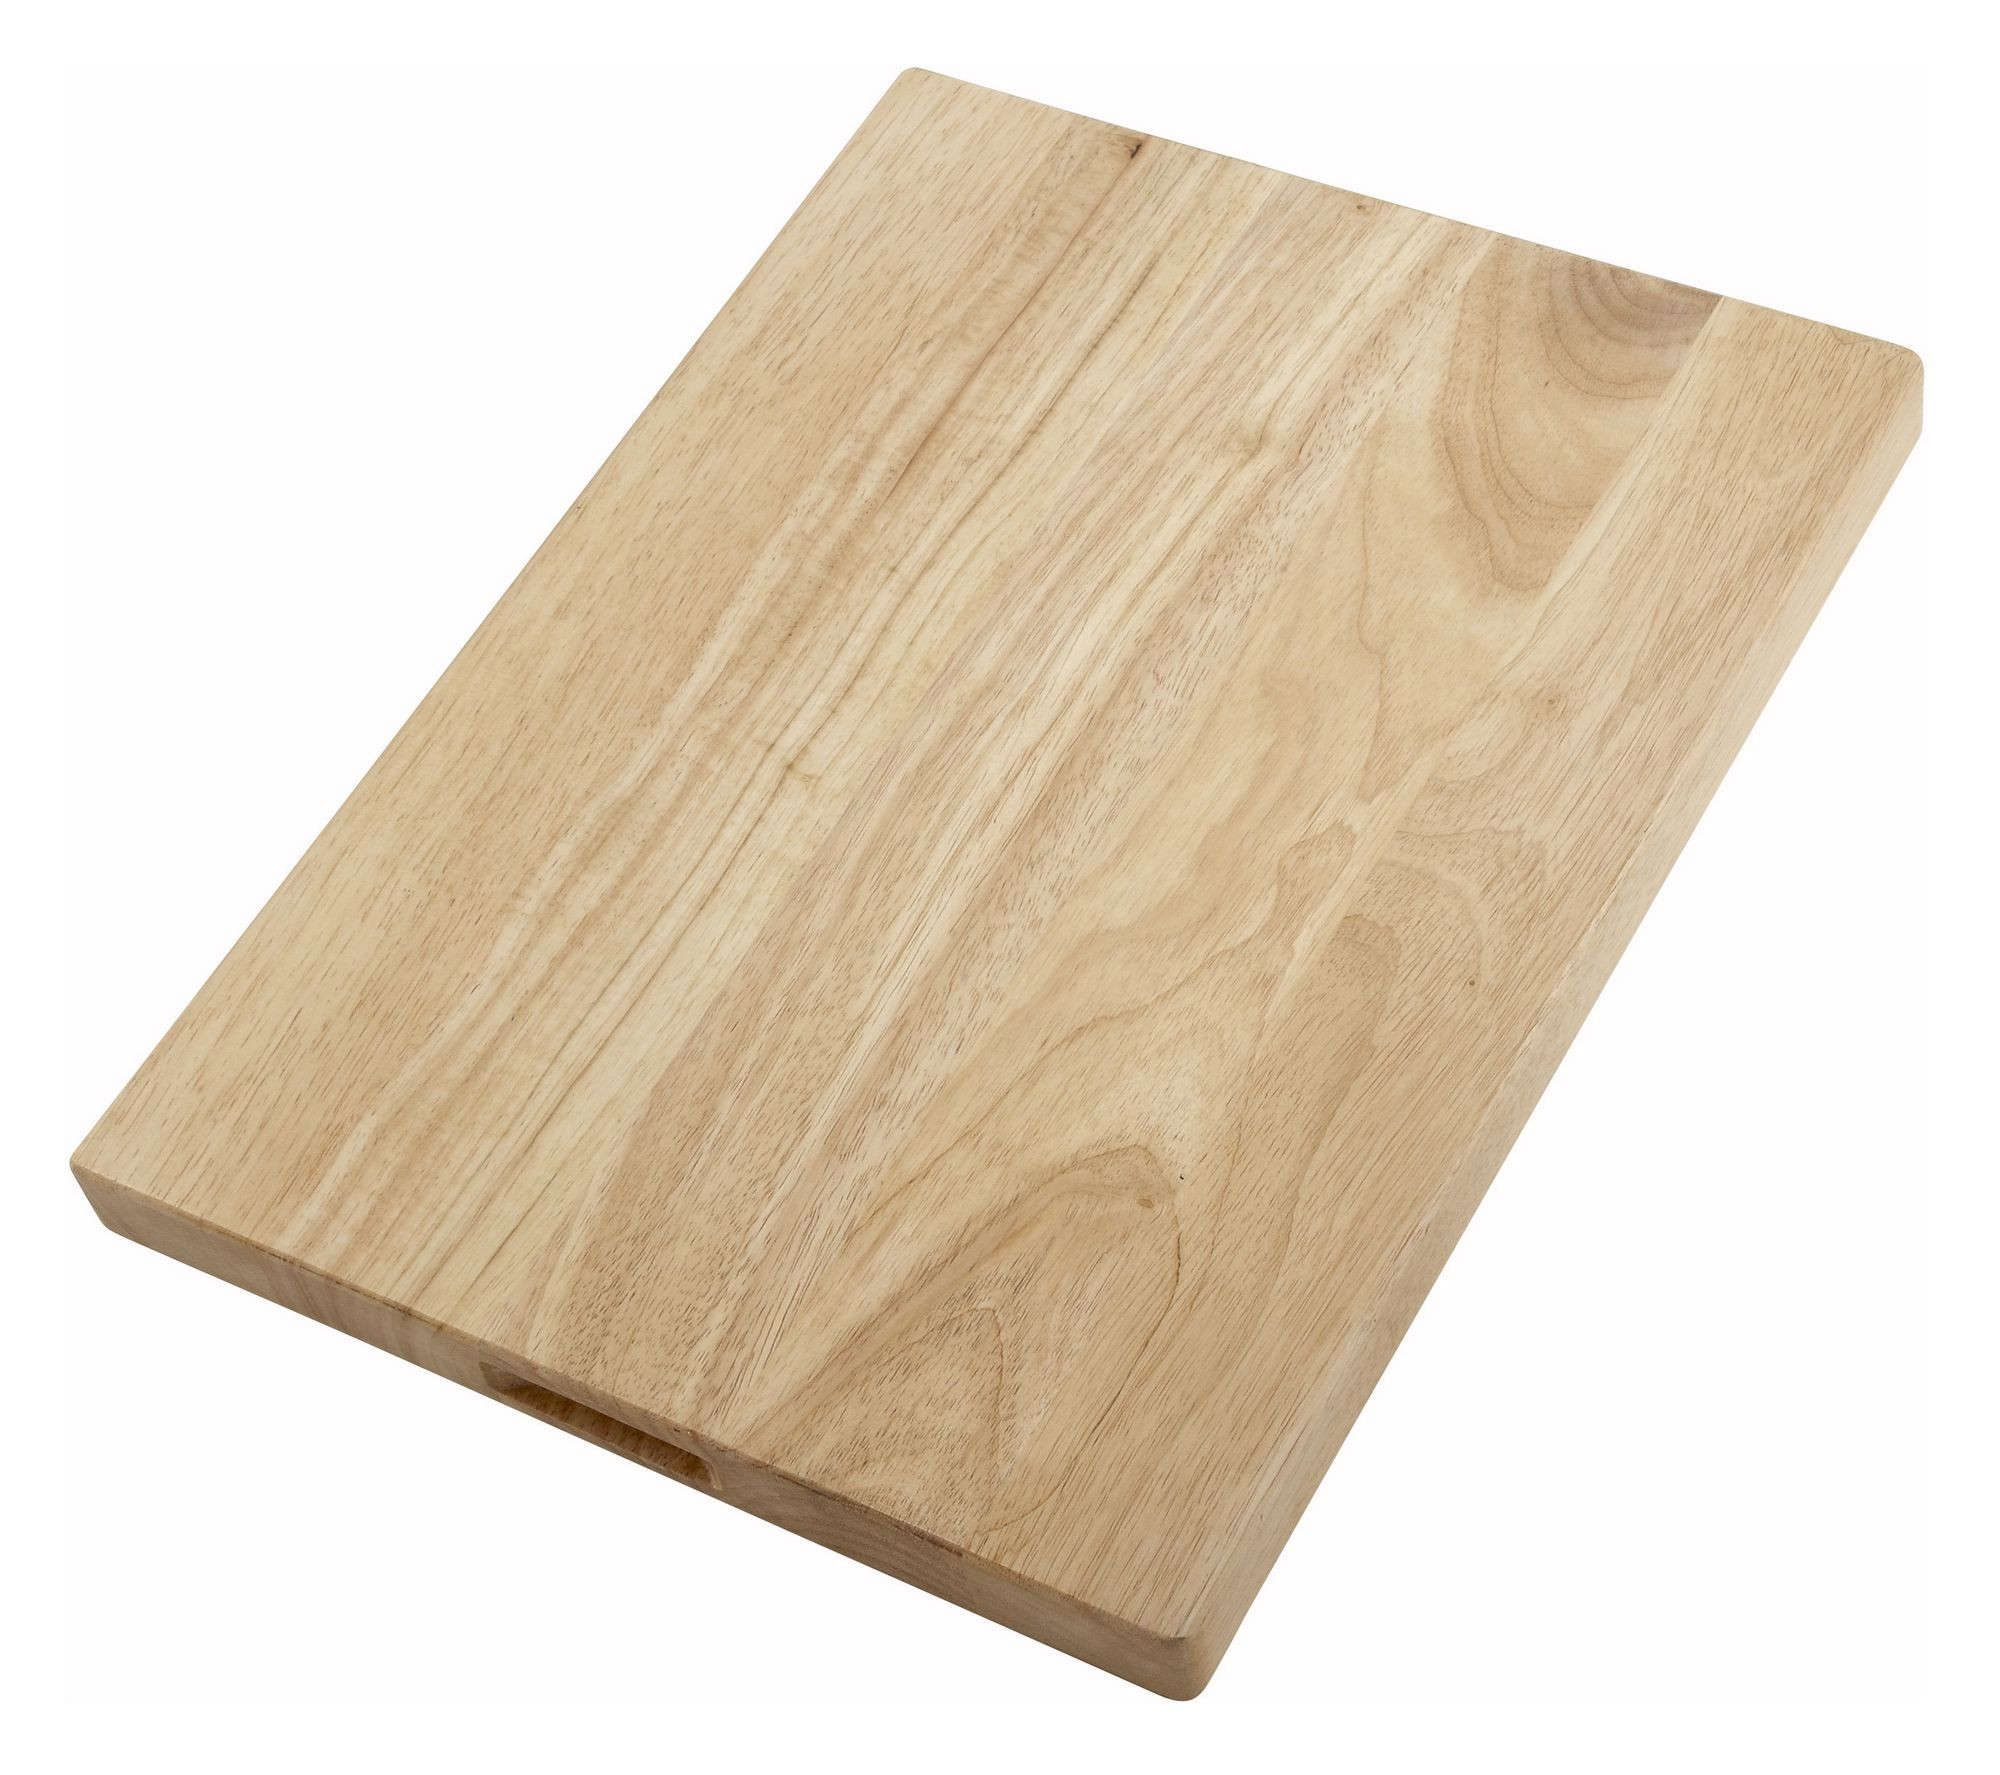 "Winco WCB-1520 Wood Butcher Block 15"" x 20"" x 1-3/4"" Thick"